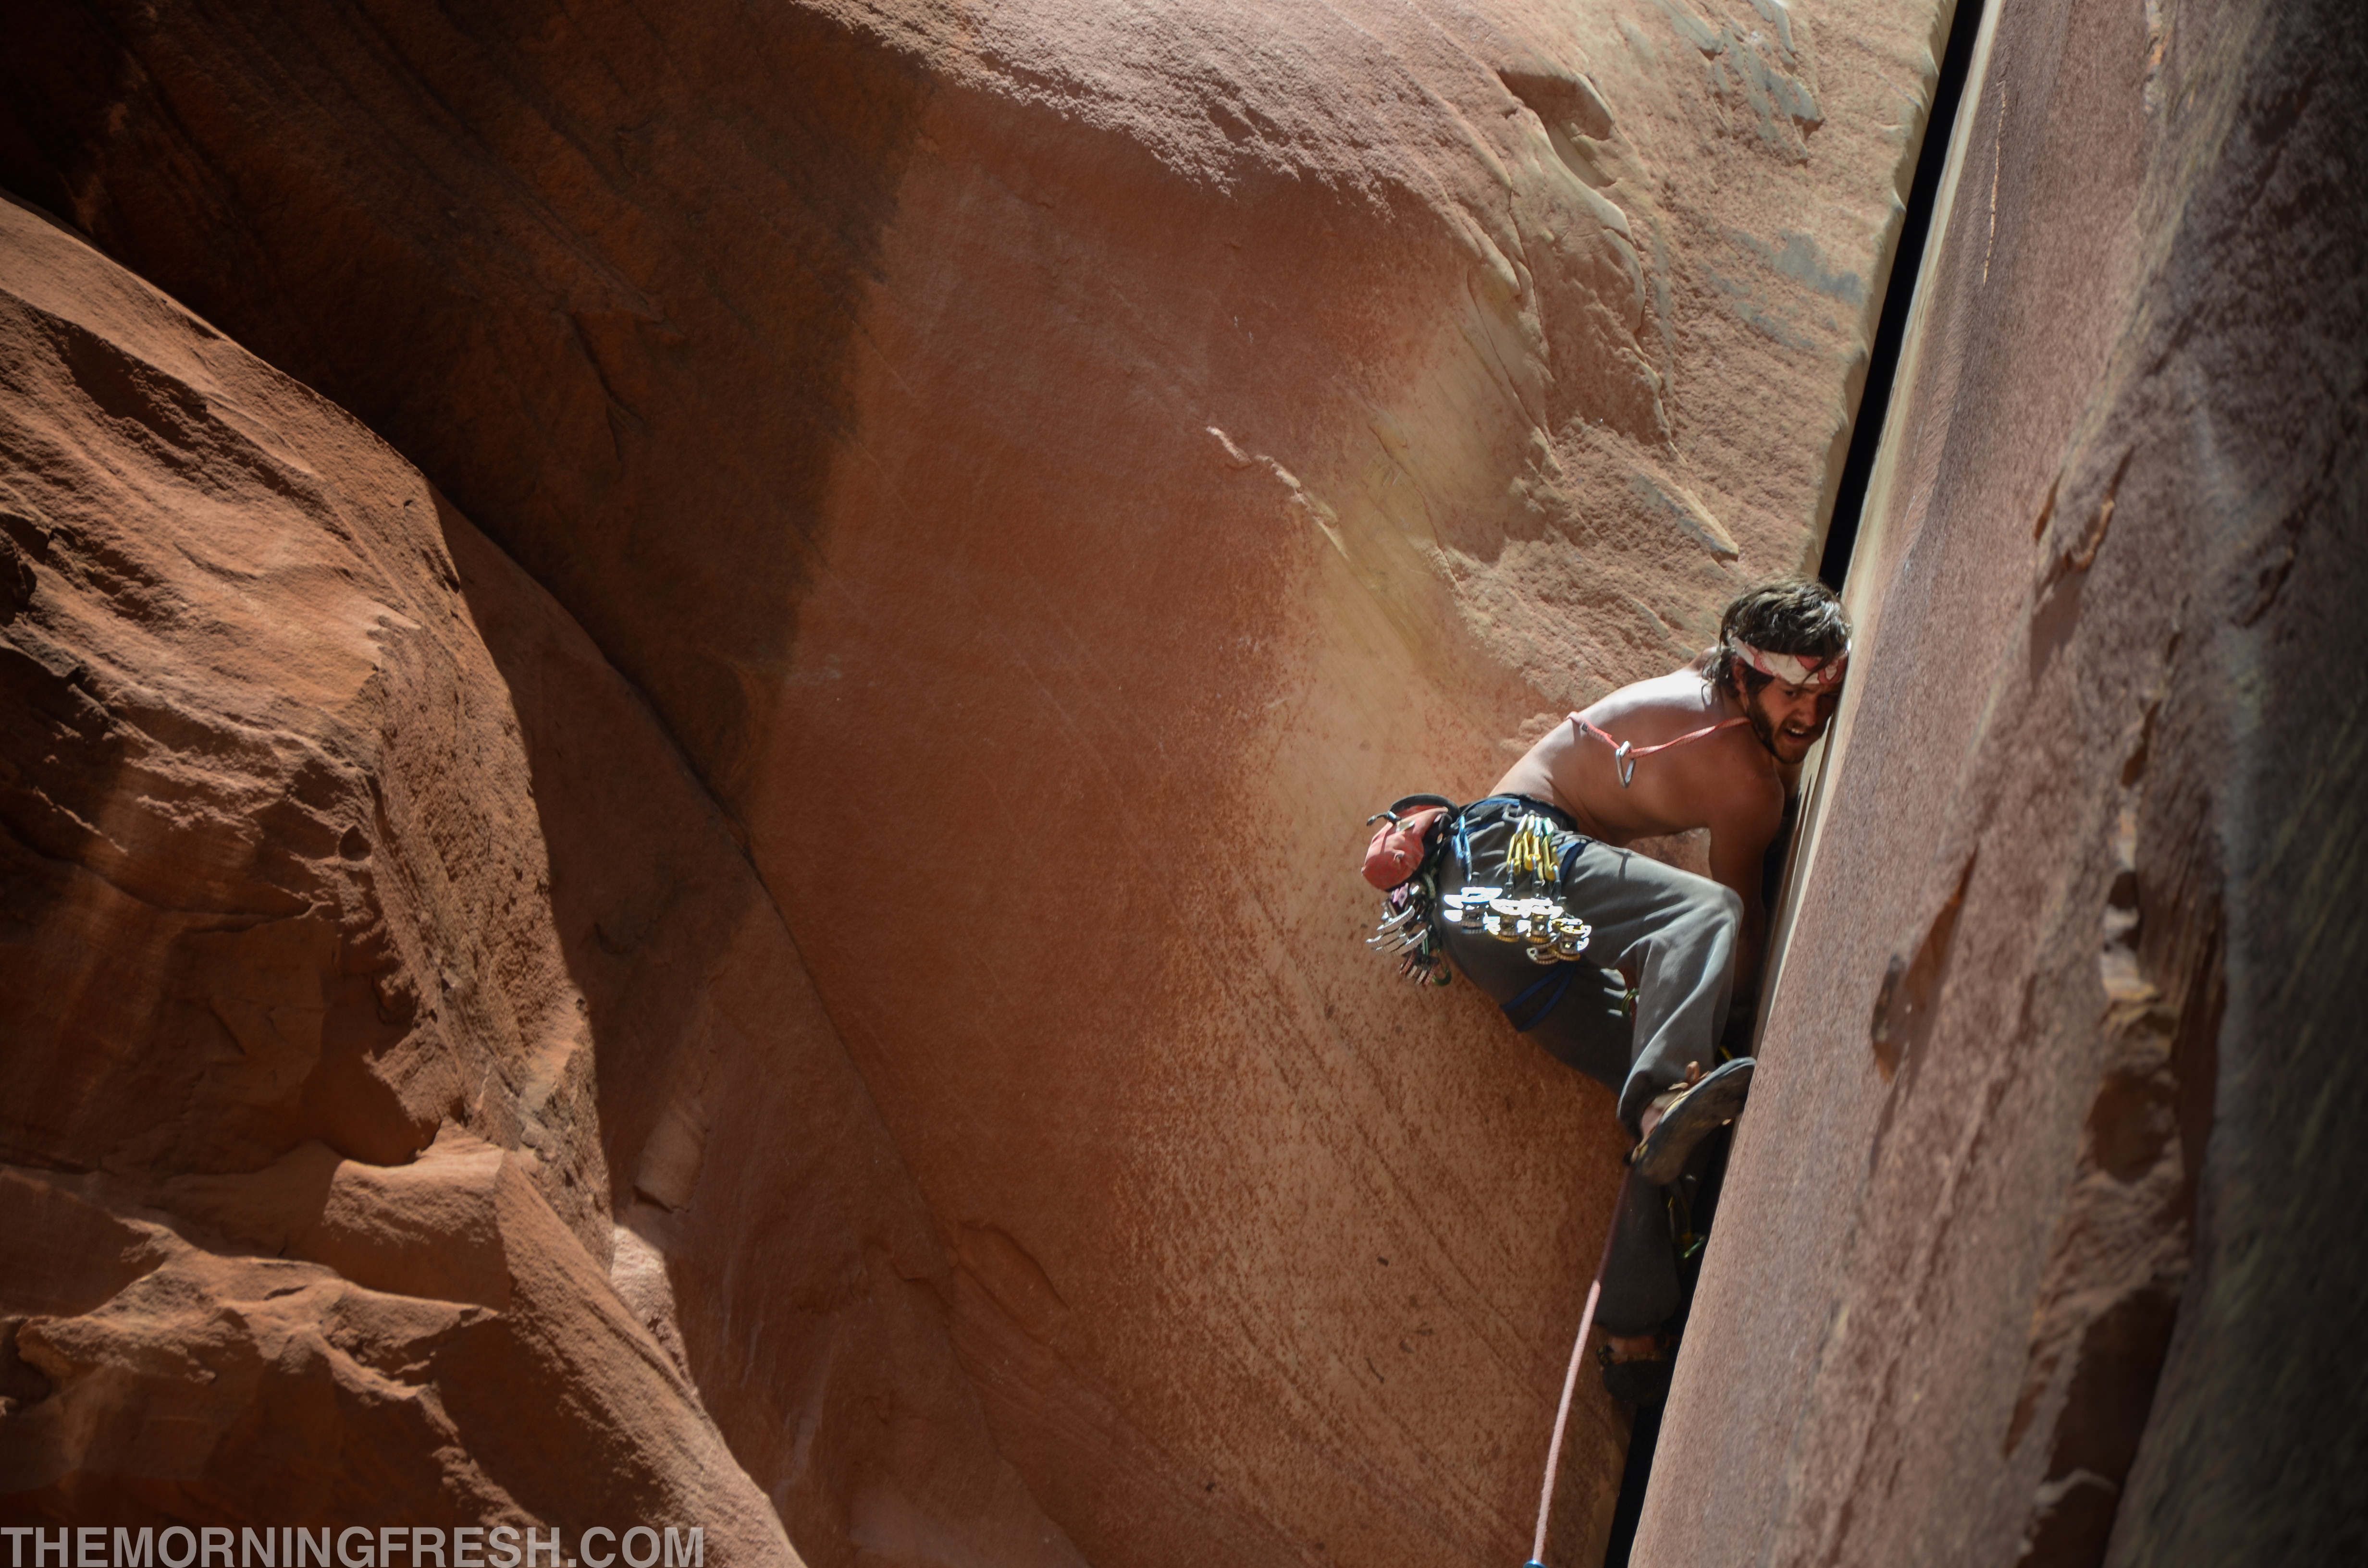 Jeremy Rush using everything he has on Incredible Hand Crack (5.10c) at Indian Creek in Utah.